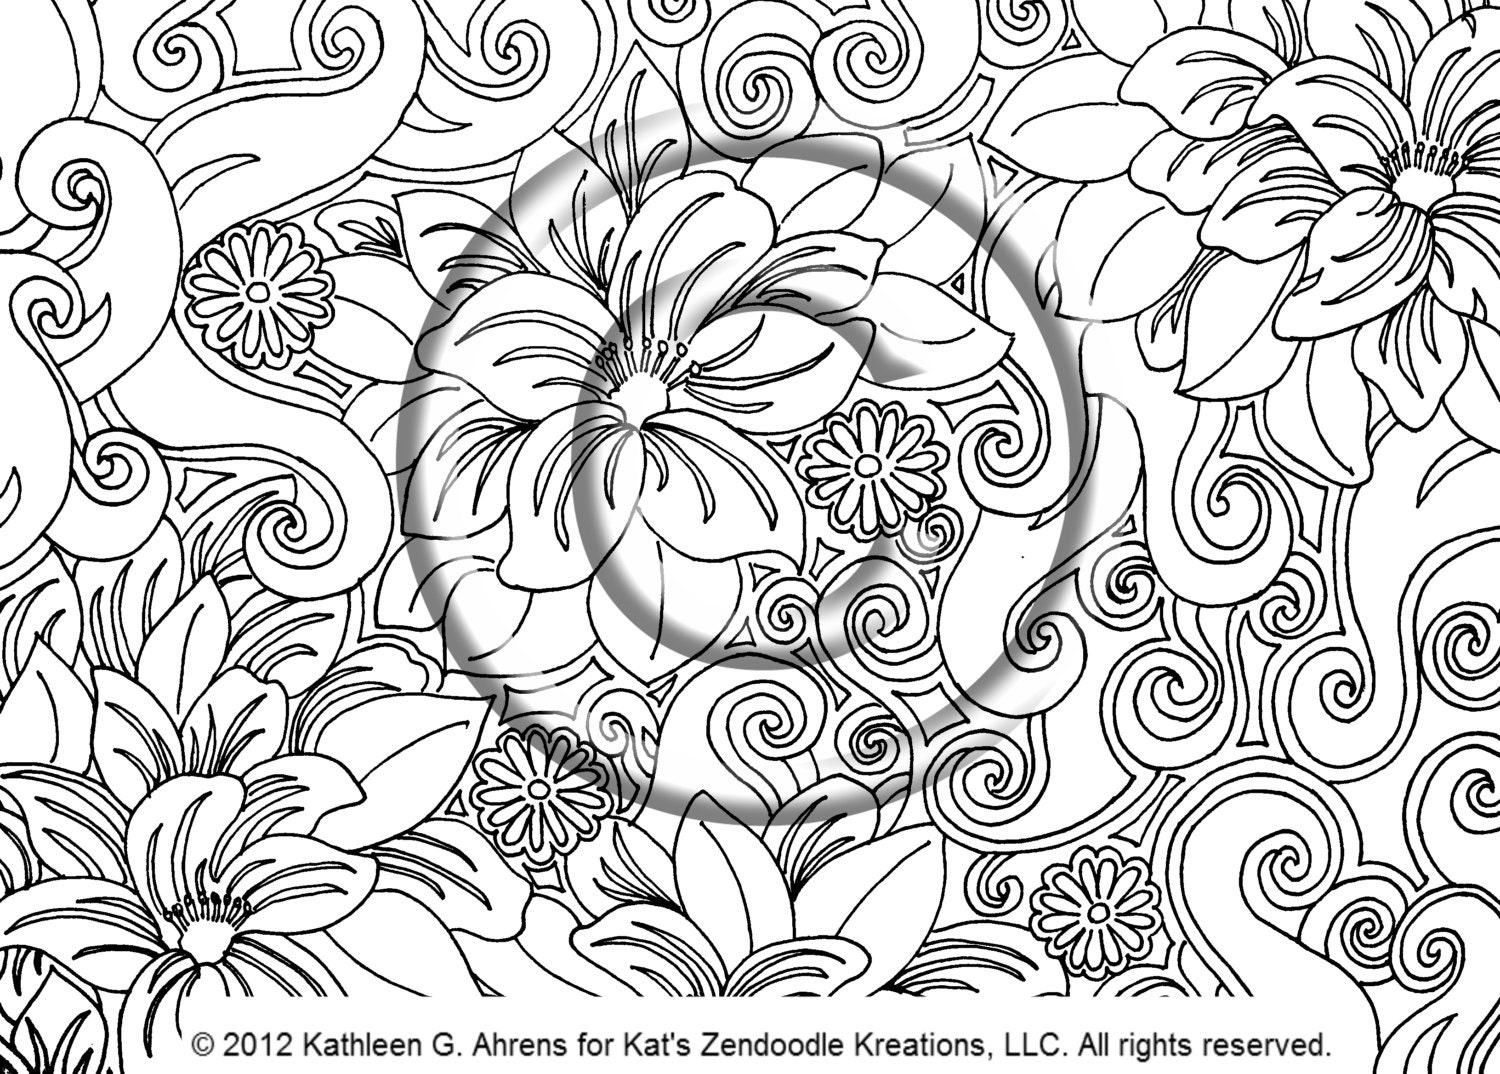 psychedelic hippie coloring page instant pdf download 1500x1155 psychedelic - Psychedelic Hippie Coloring Pages